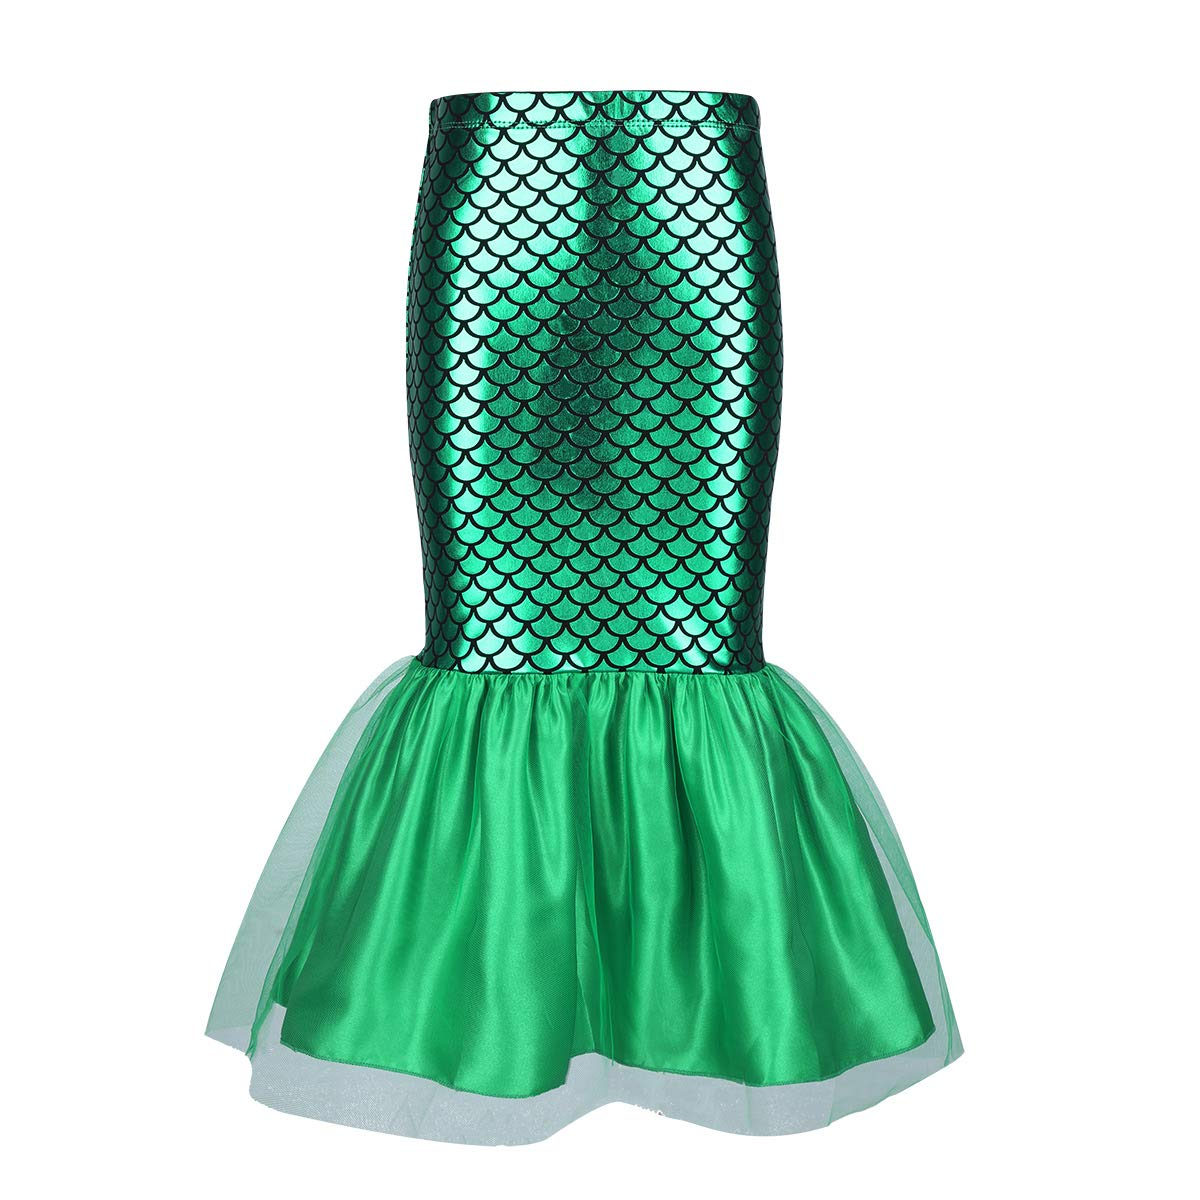 45c88a89394227 Amazon.com: CHICTRY Toddler Girls Little Mermaid Costume Halloween Sequins  Tutu Skirt Tails Dress up: Clothing